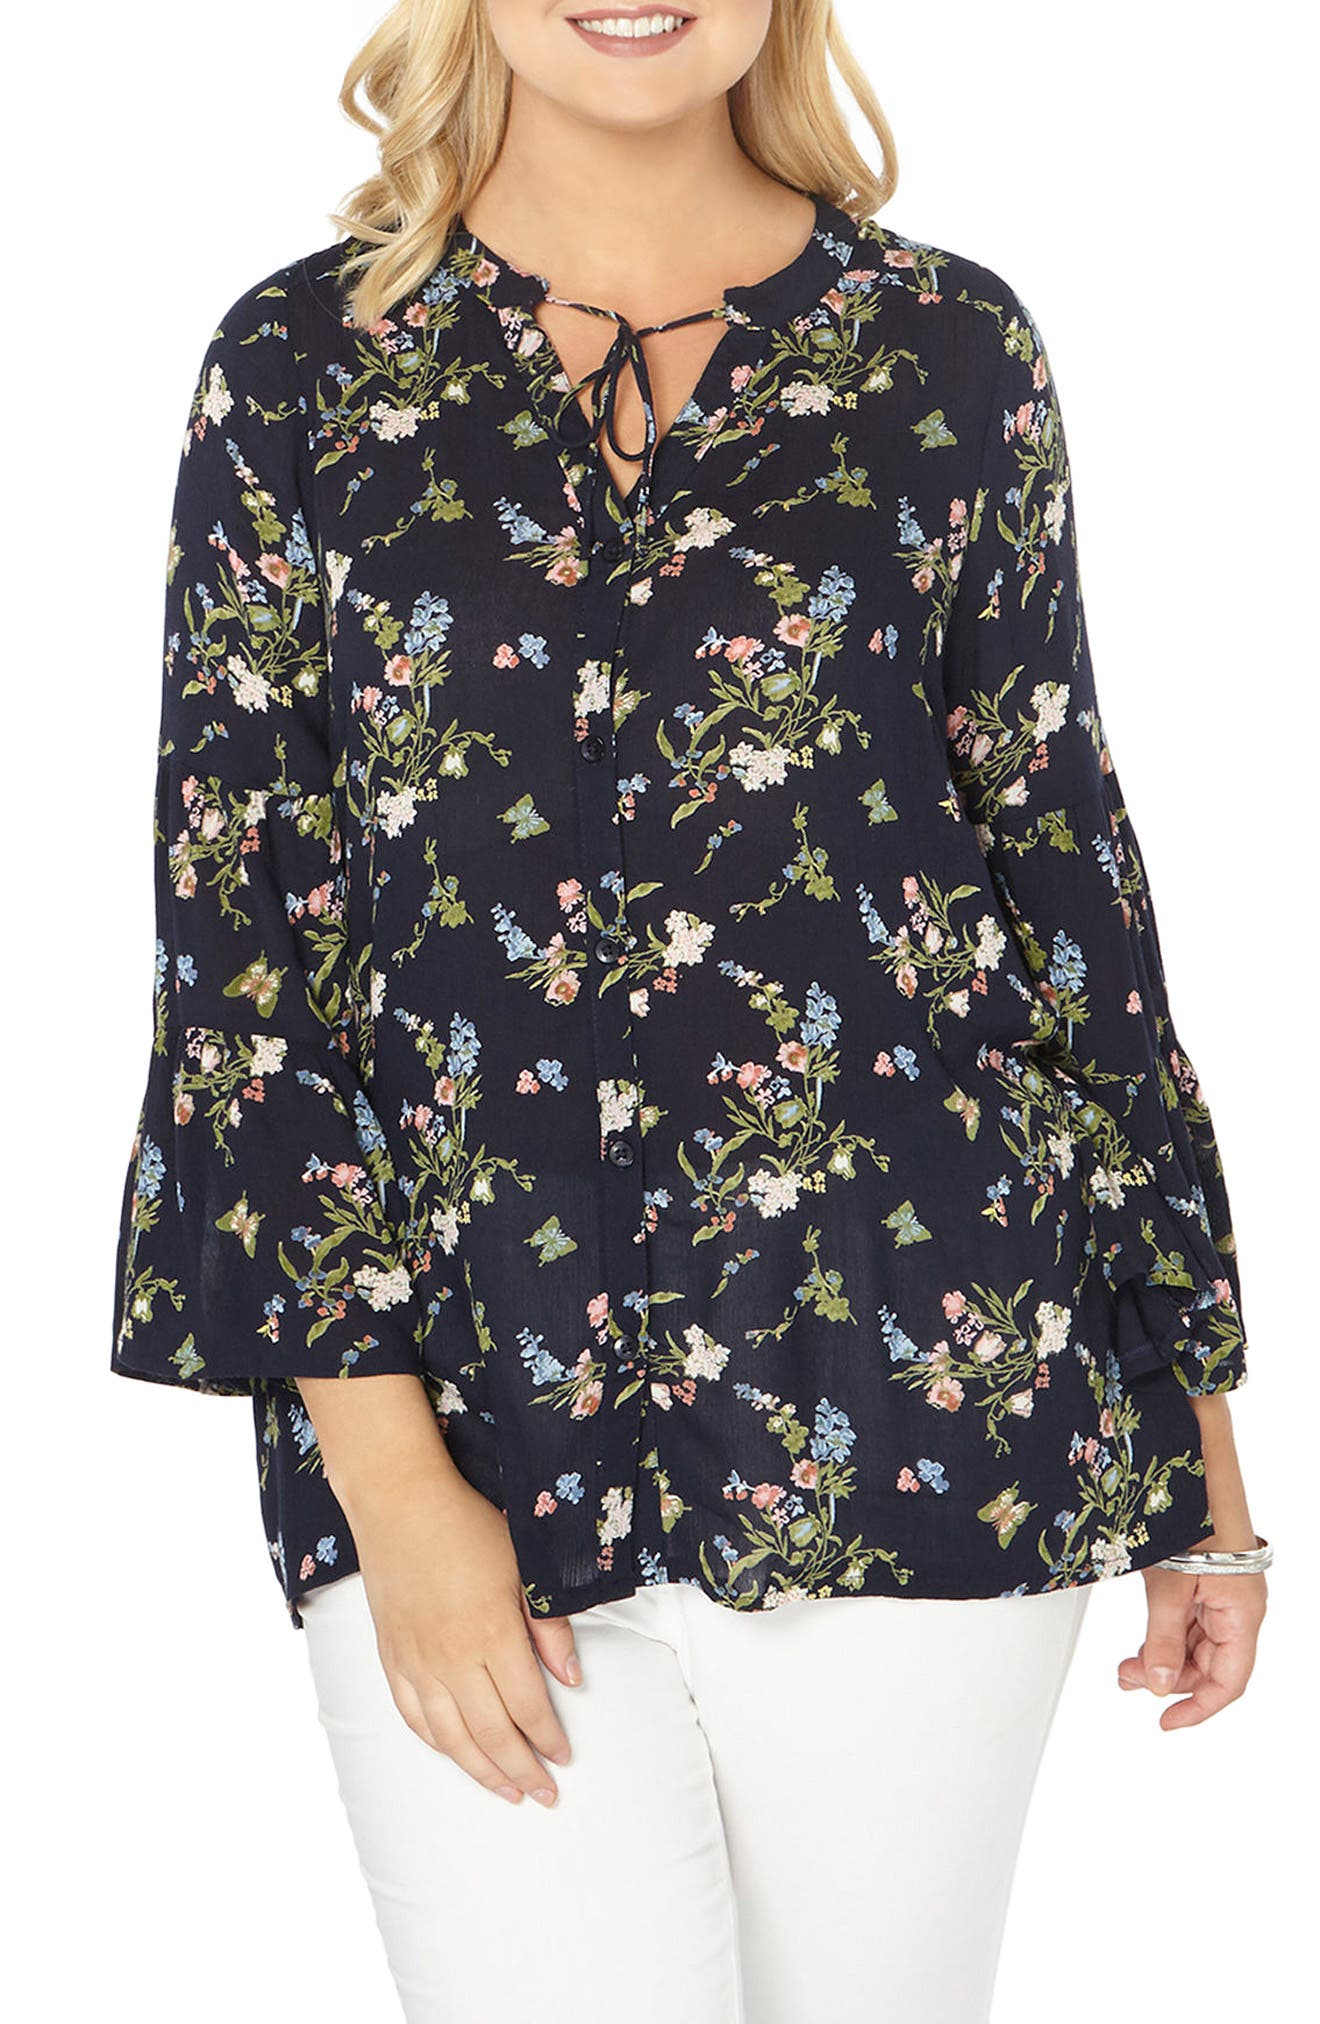 Main Image - Evans Bell Sleeve Top (Plus Size)